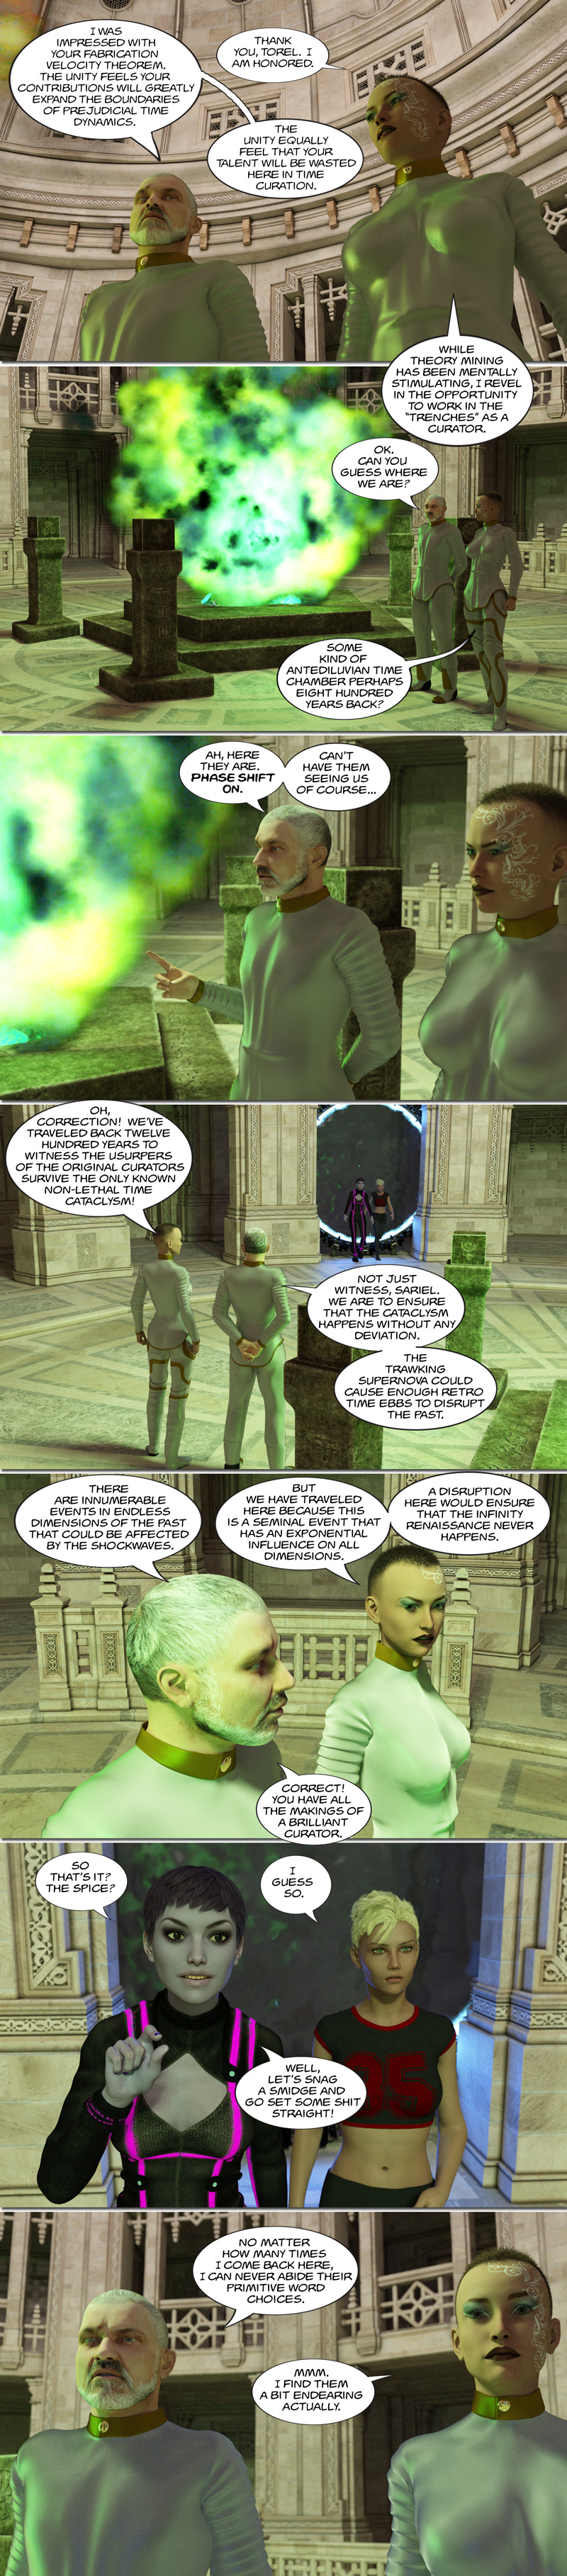 Chapter 14, page 23 – the Uon spice room and futuristic historians (Sariel)